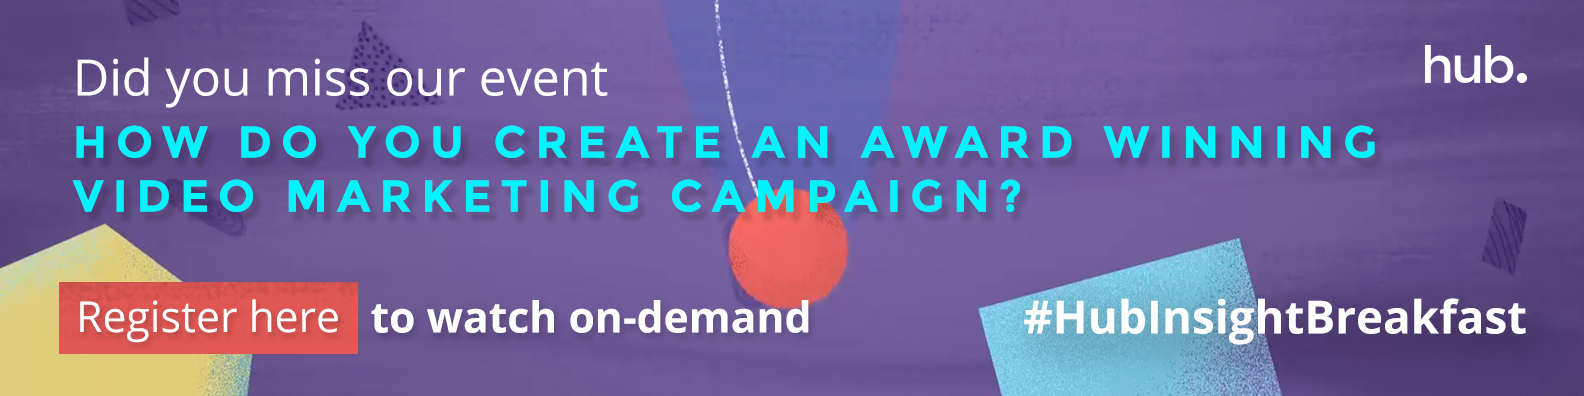 Did you miss our event: How do you create an award winning video marketing campaign? Watch on demand here!